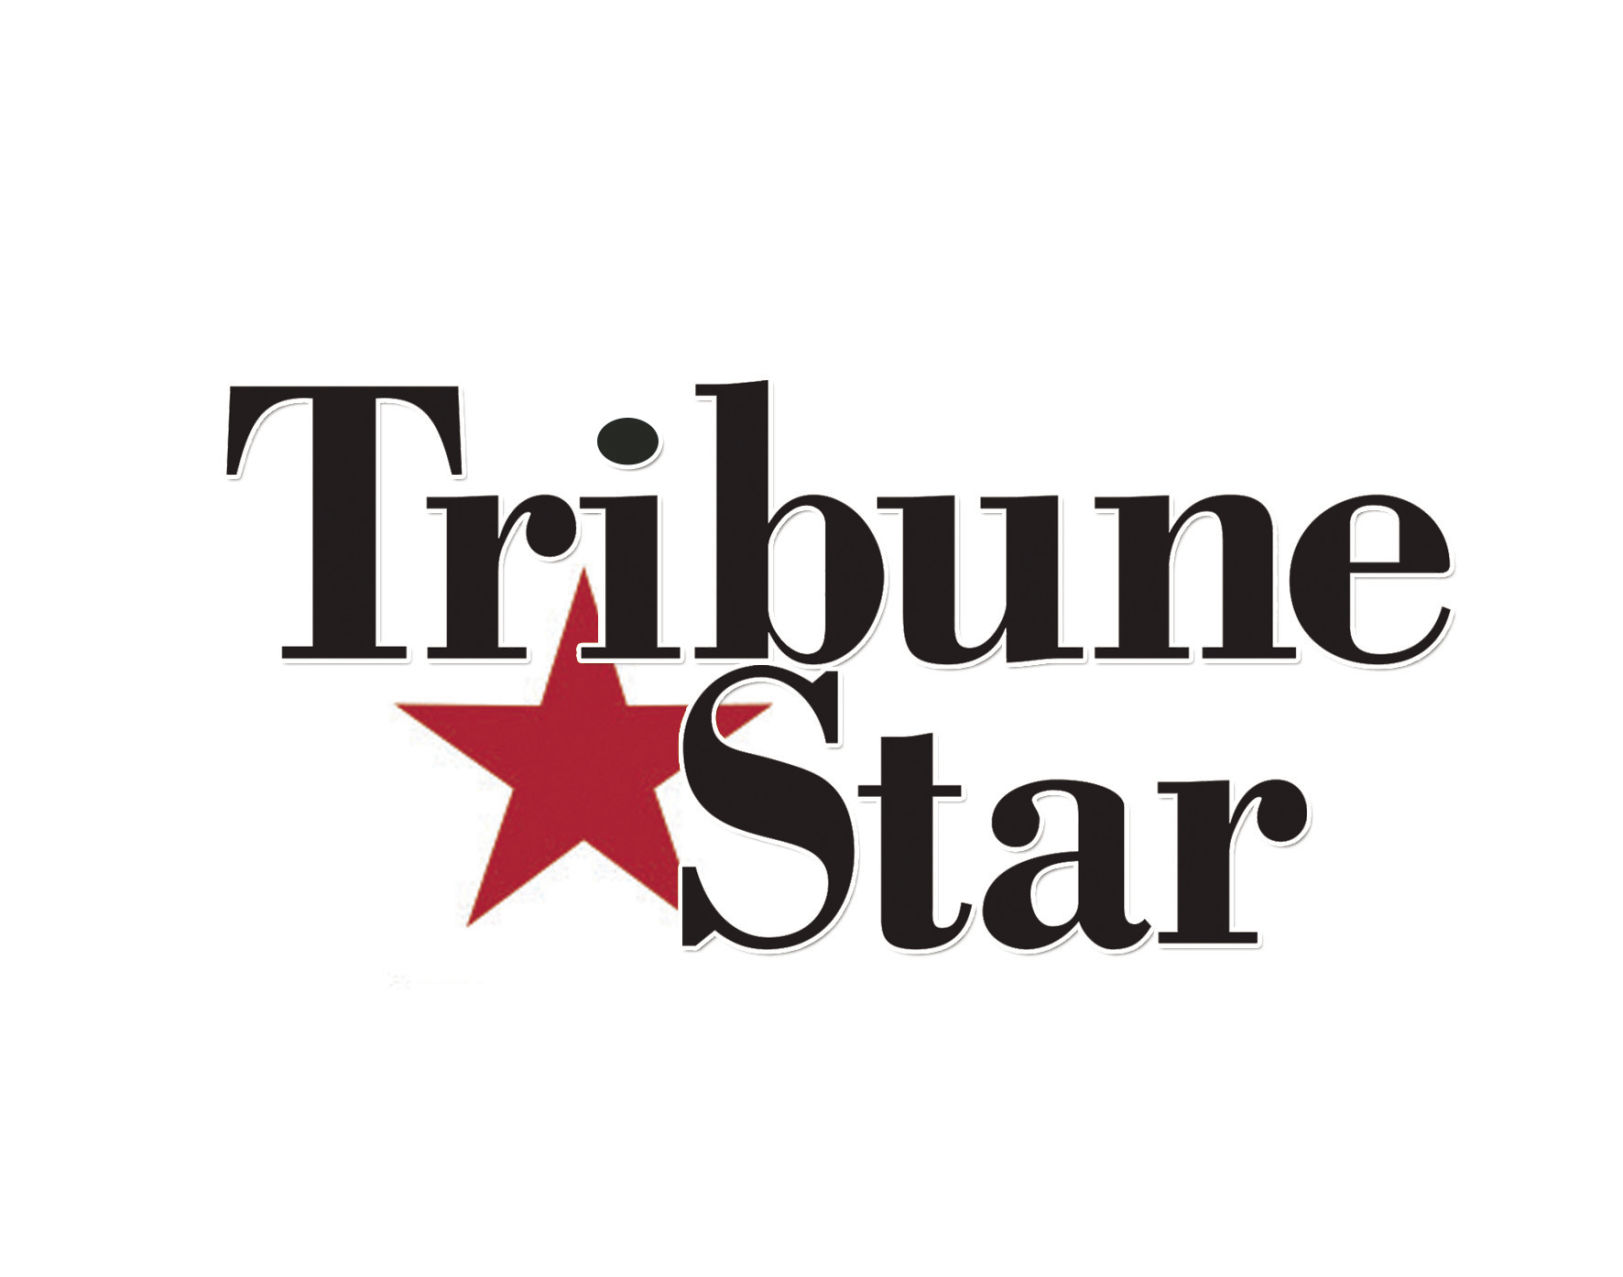 Learn to be an industrial hemp producer from experts - Terre Haute Tribune Star